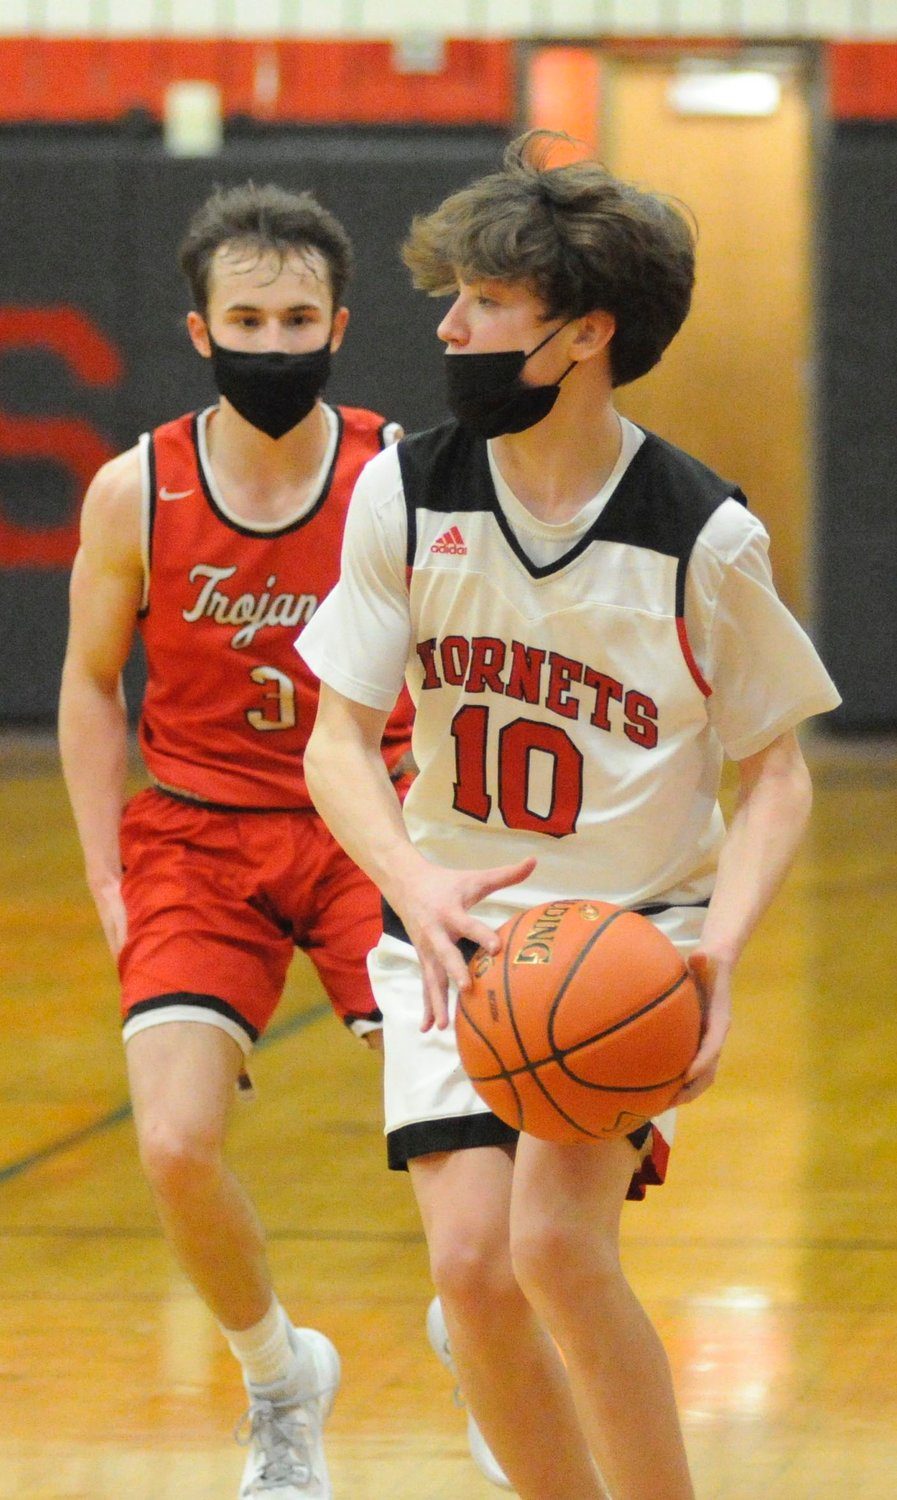 Searching for a score. Honesdale's junior guard Karter Kromko scored 9 points, all 3-pointers. He is challenged on the court by North Pocano's Zack Walsh, who posted 12 points, including two 3-pointers.